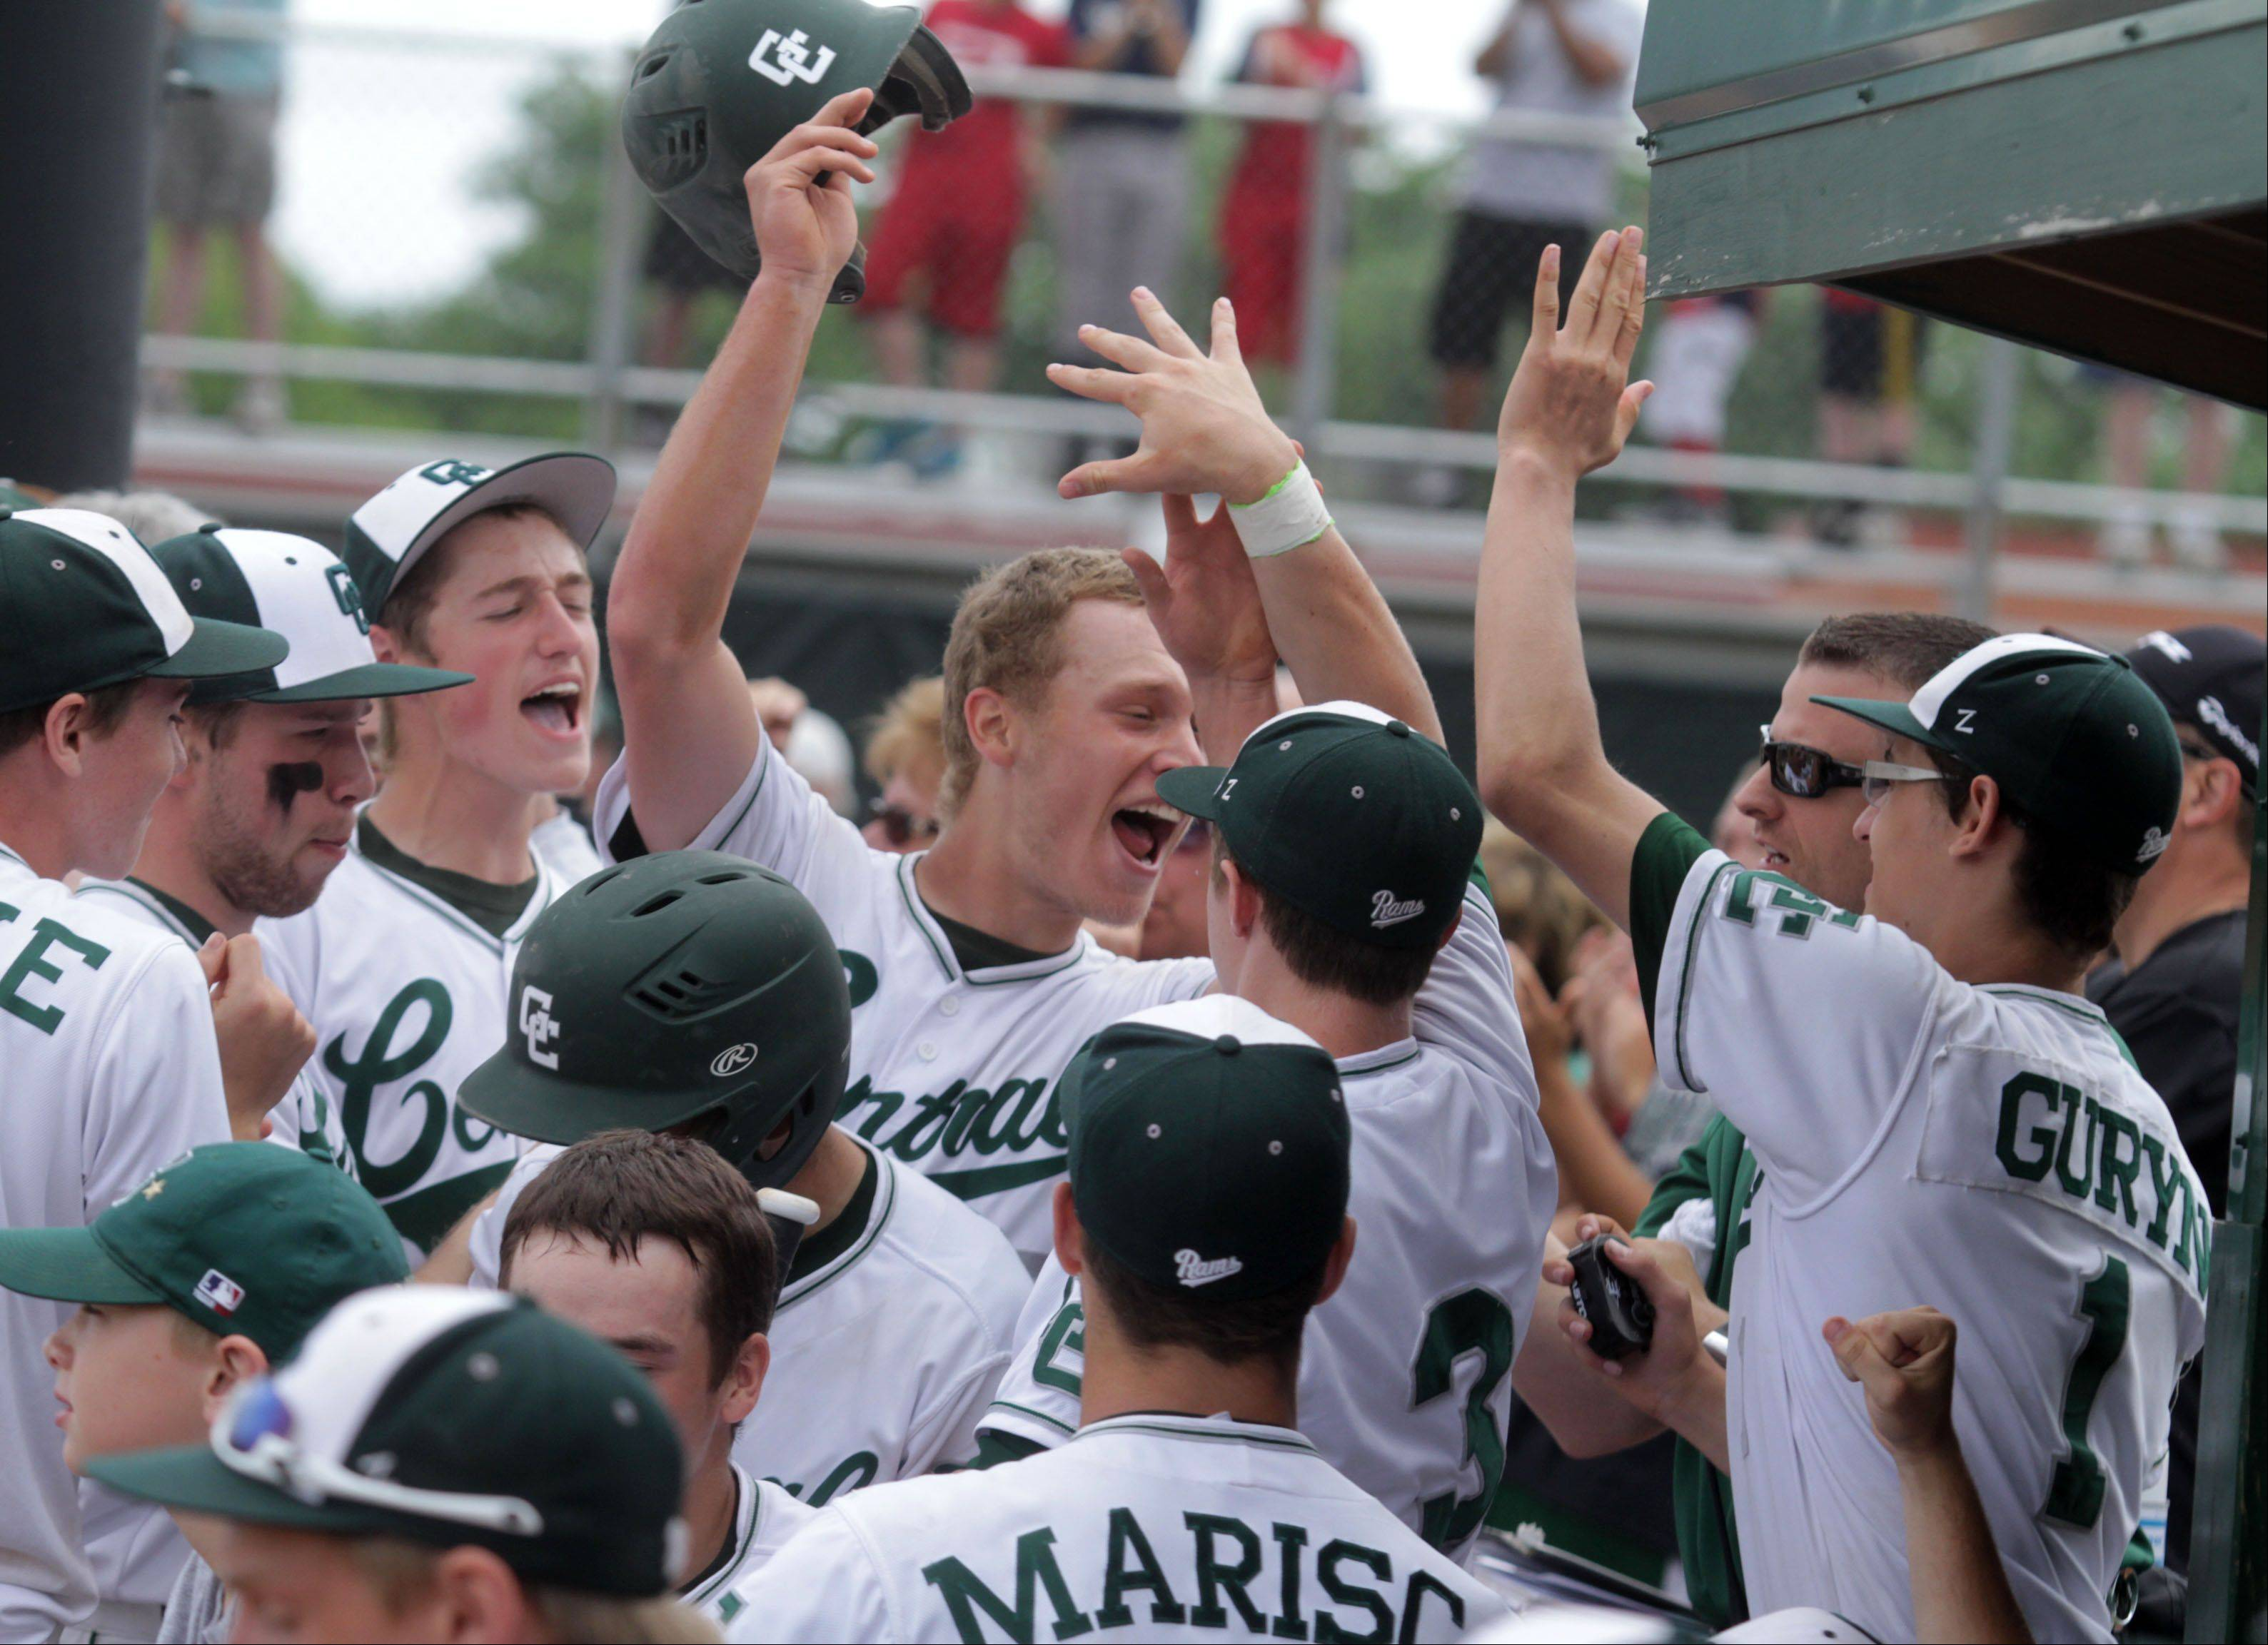 Grayslake Central's Kyle Balling celebrates scoring while he enters the dugout during the Rams' sectional championship effort Saturday.